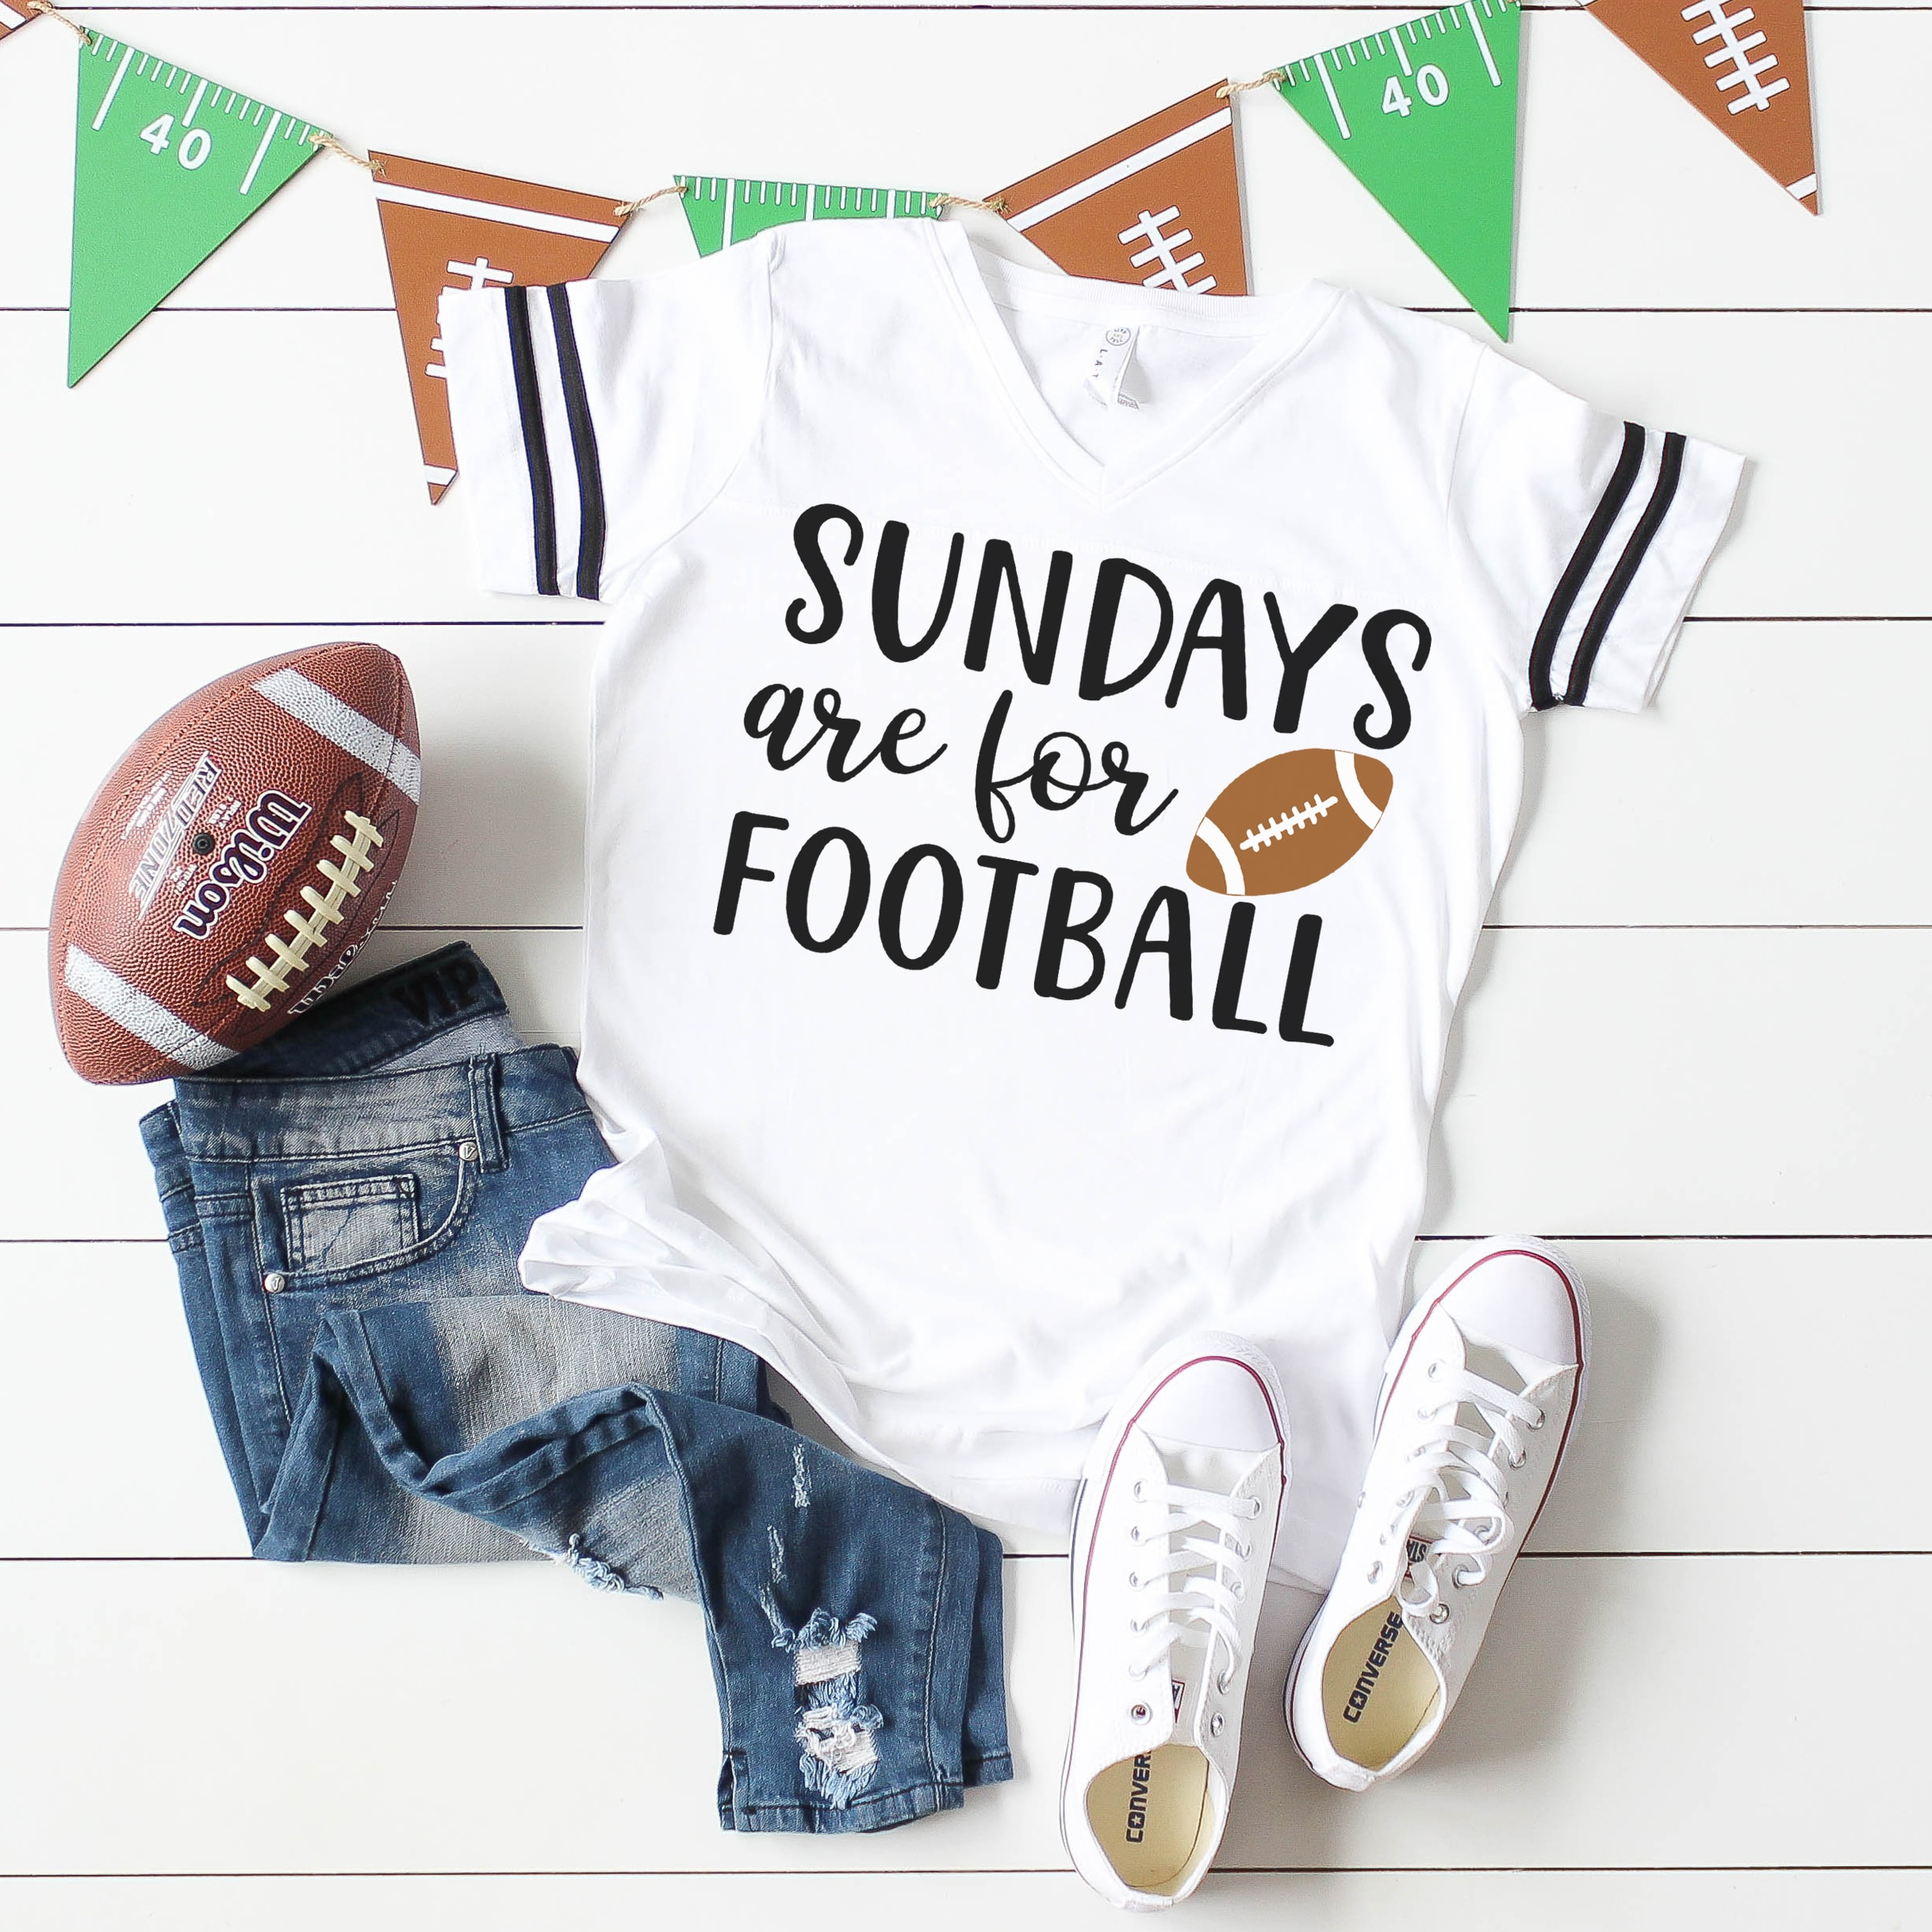 """""""Sundays are for Football"""" Shirt on white wood background with football, jeans, white shoes, and football banner"""